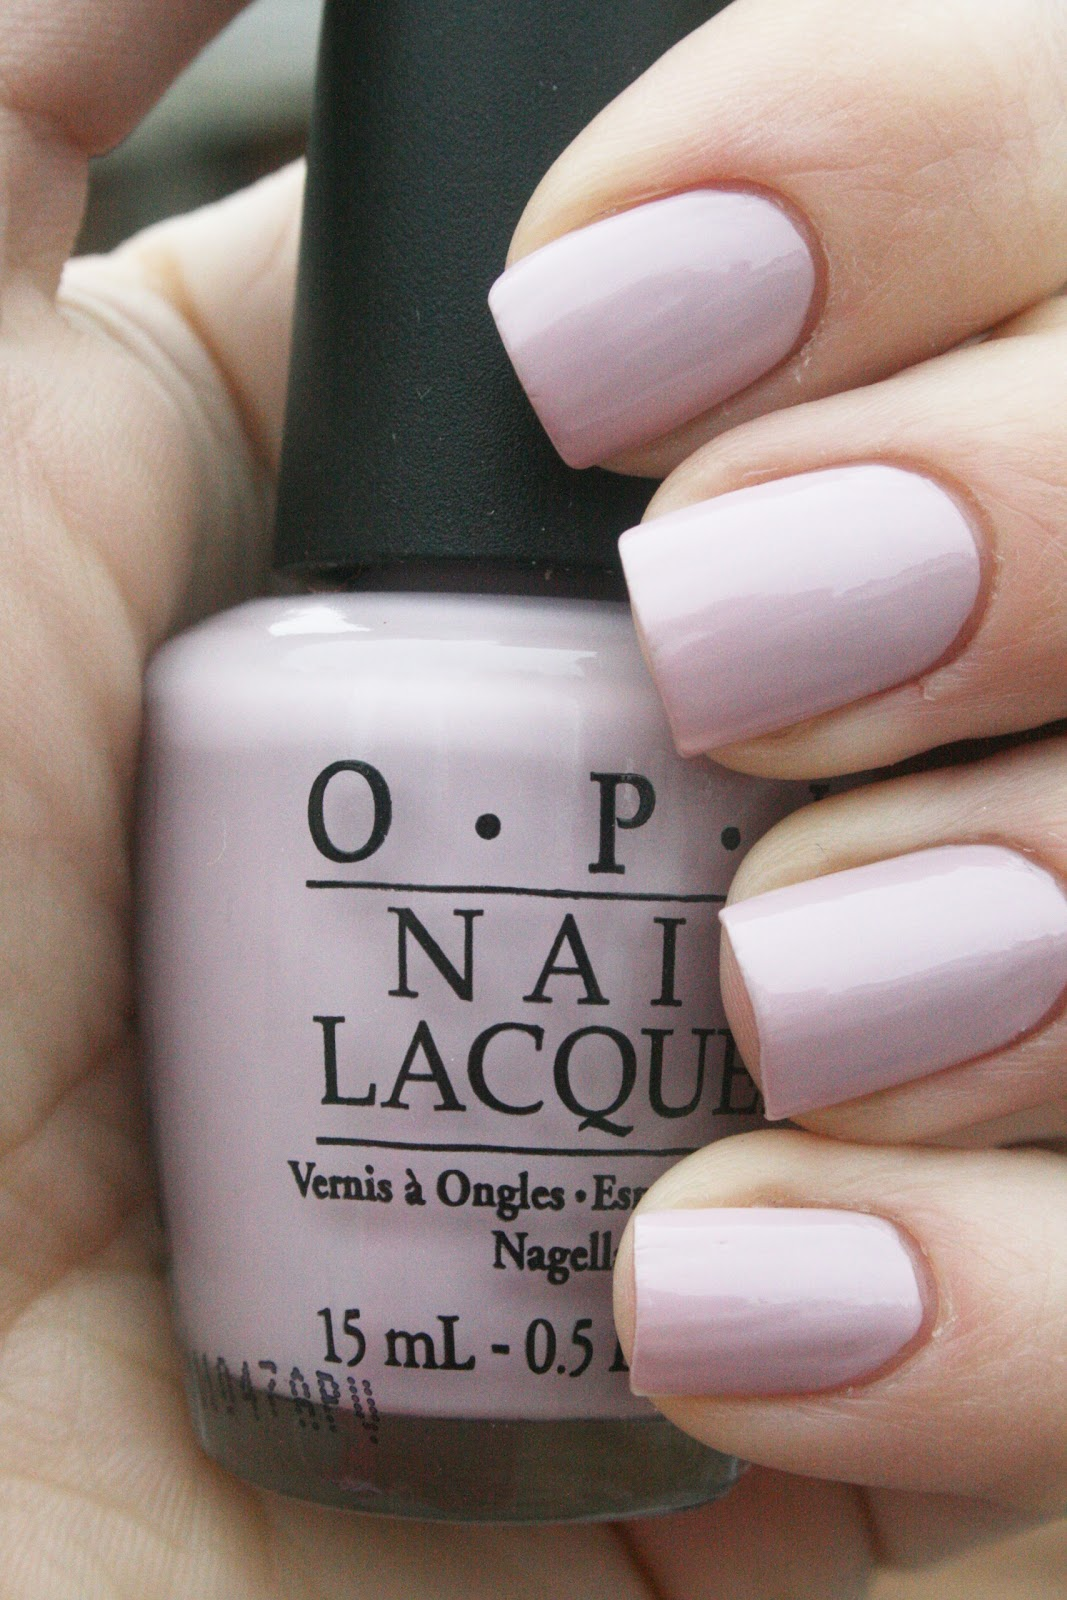 Nails by Catharina: OPI Steady as she rose